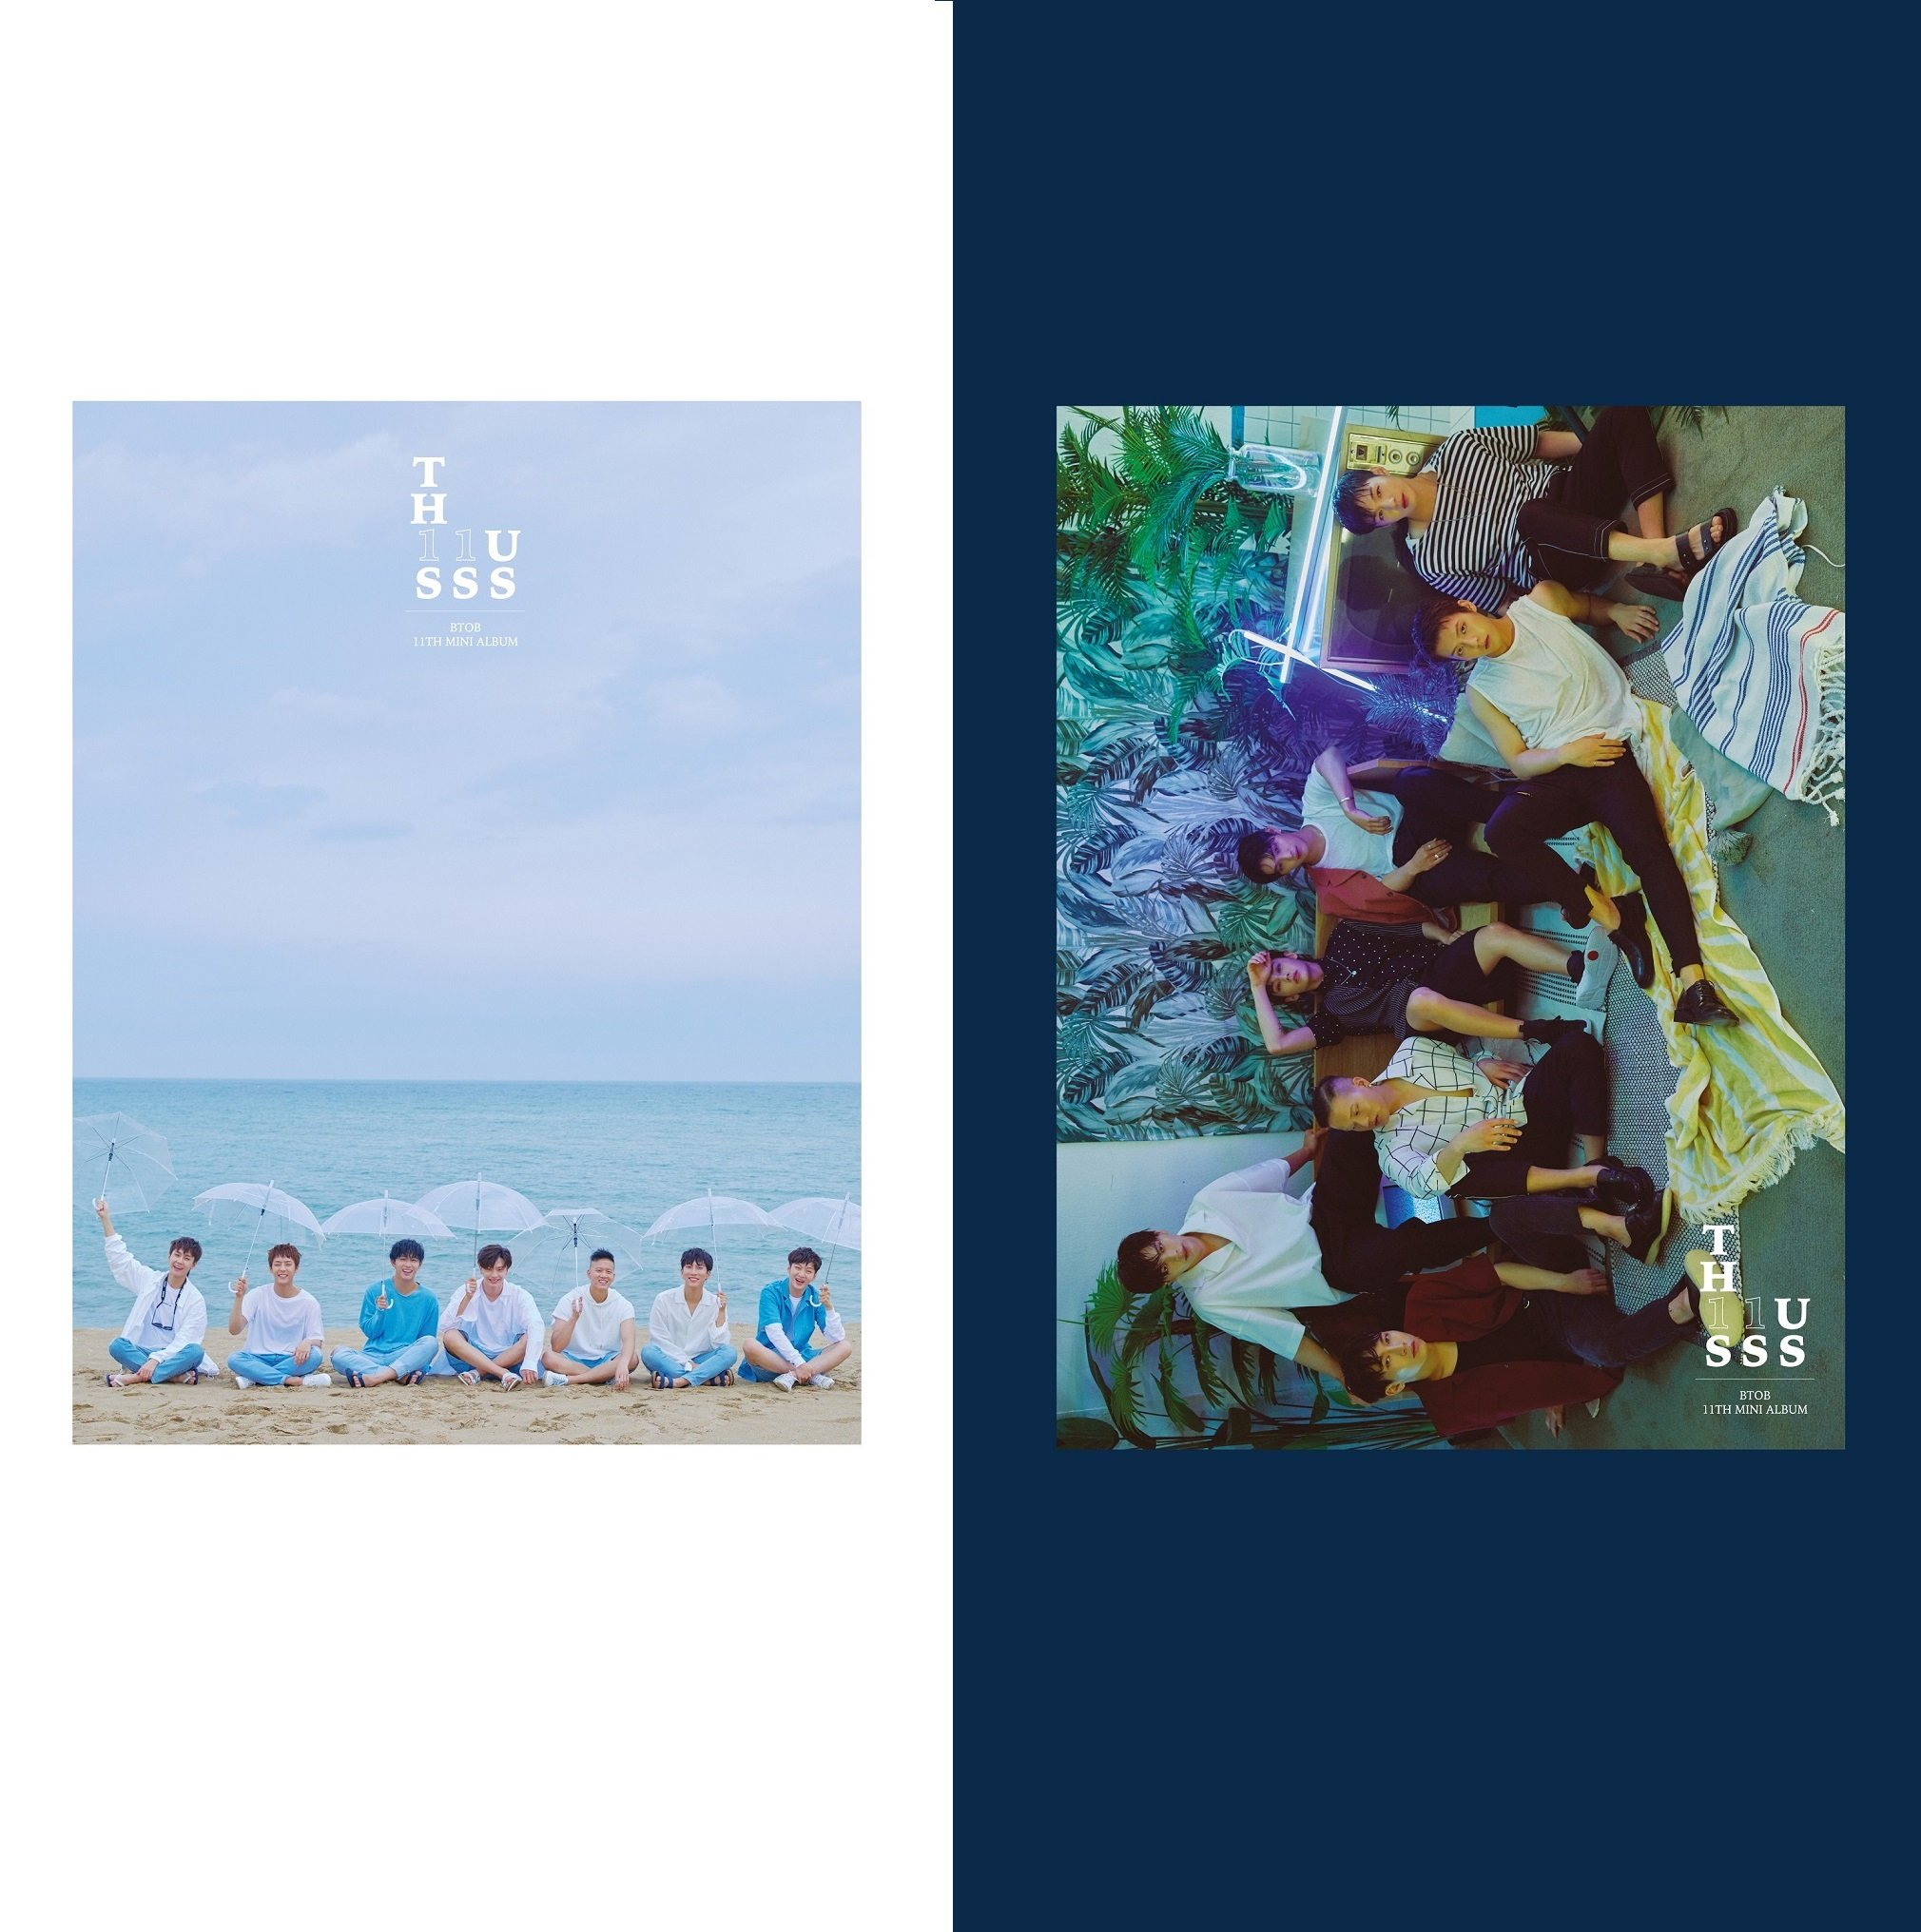 Cube Entertainment BTOB - THIS IS US [SEE+FEEL ver. SET] (11th Mini Album) 2CD+Booklet+3Postcards+Photocard+Bookmark+Event Ticket+2Folded Poster+Free Gift